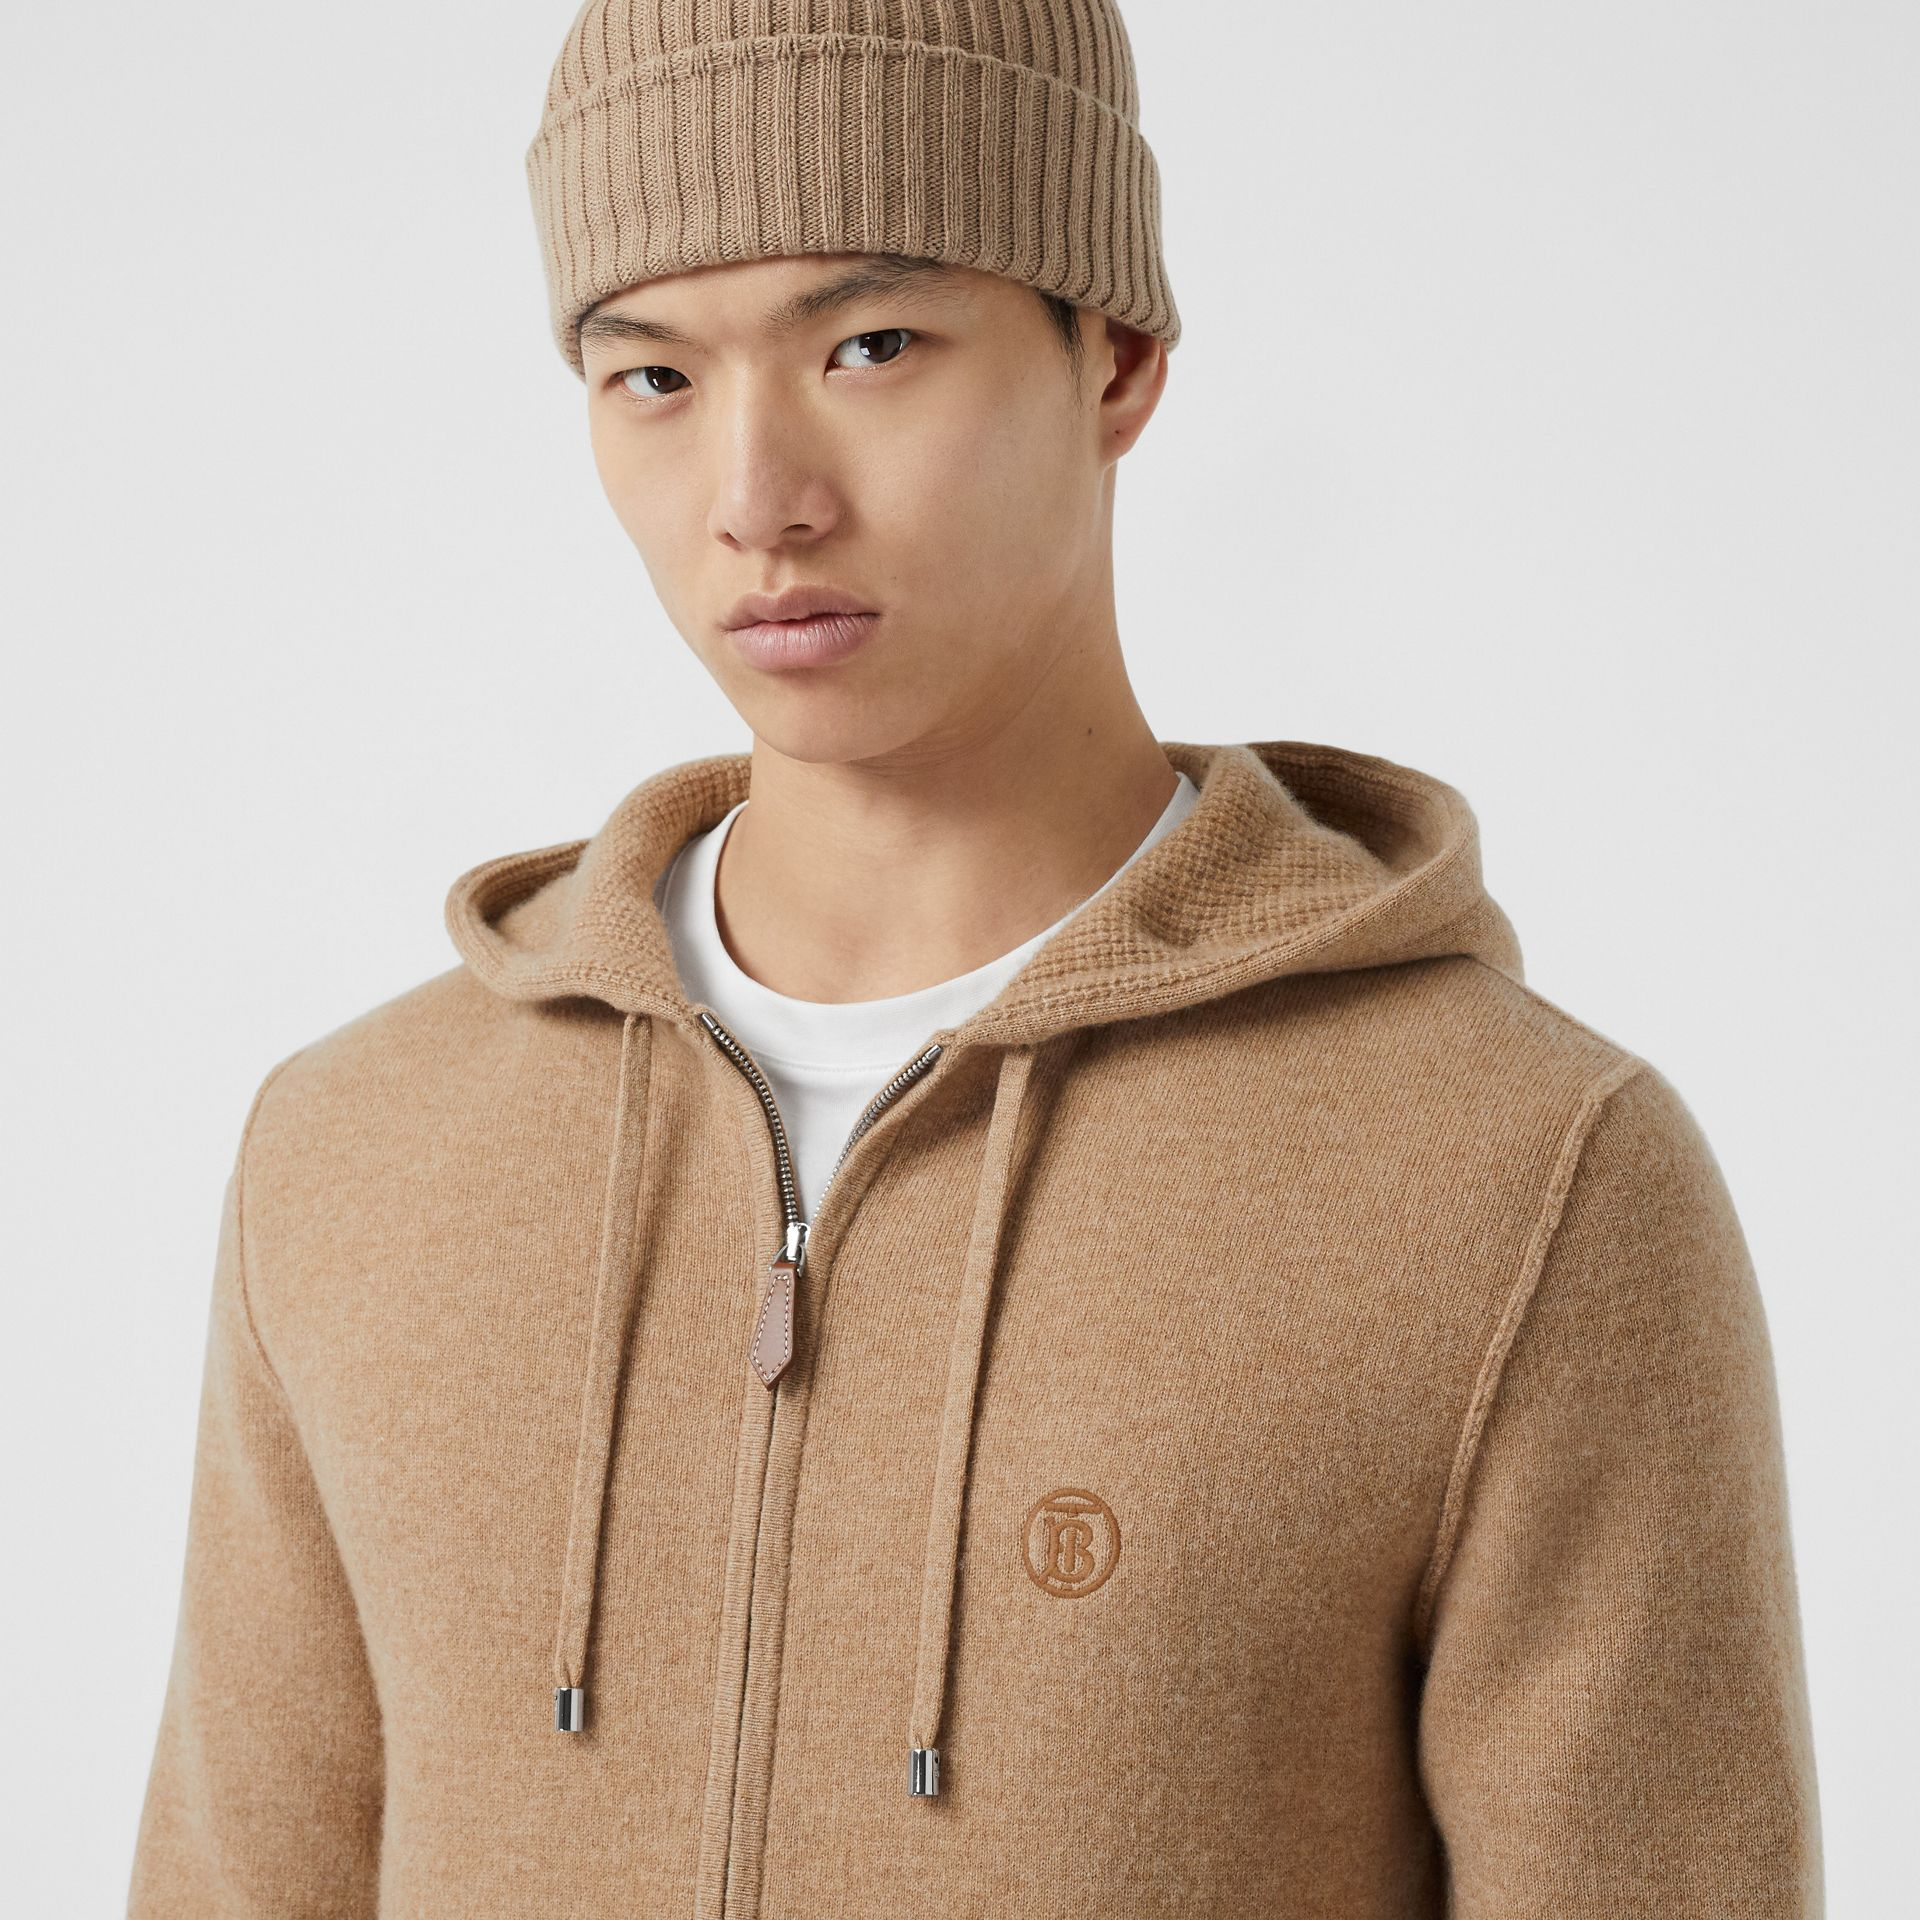 Monogram Motif Cashmere Blend Hooded Top in Pale Coffee - Men | Burberry - gallery image 4